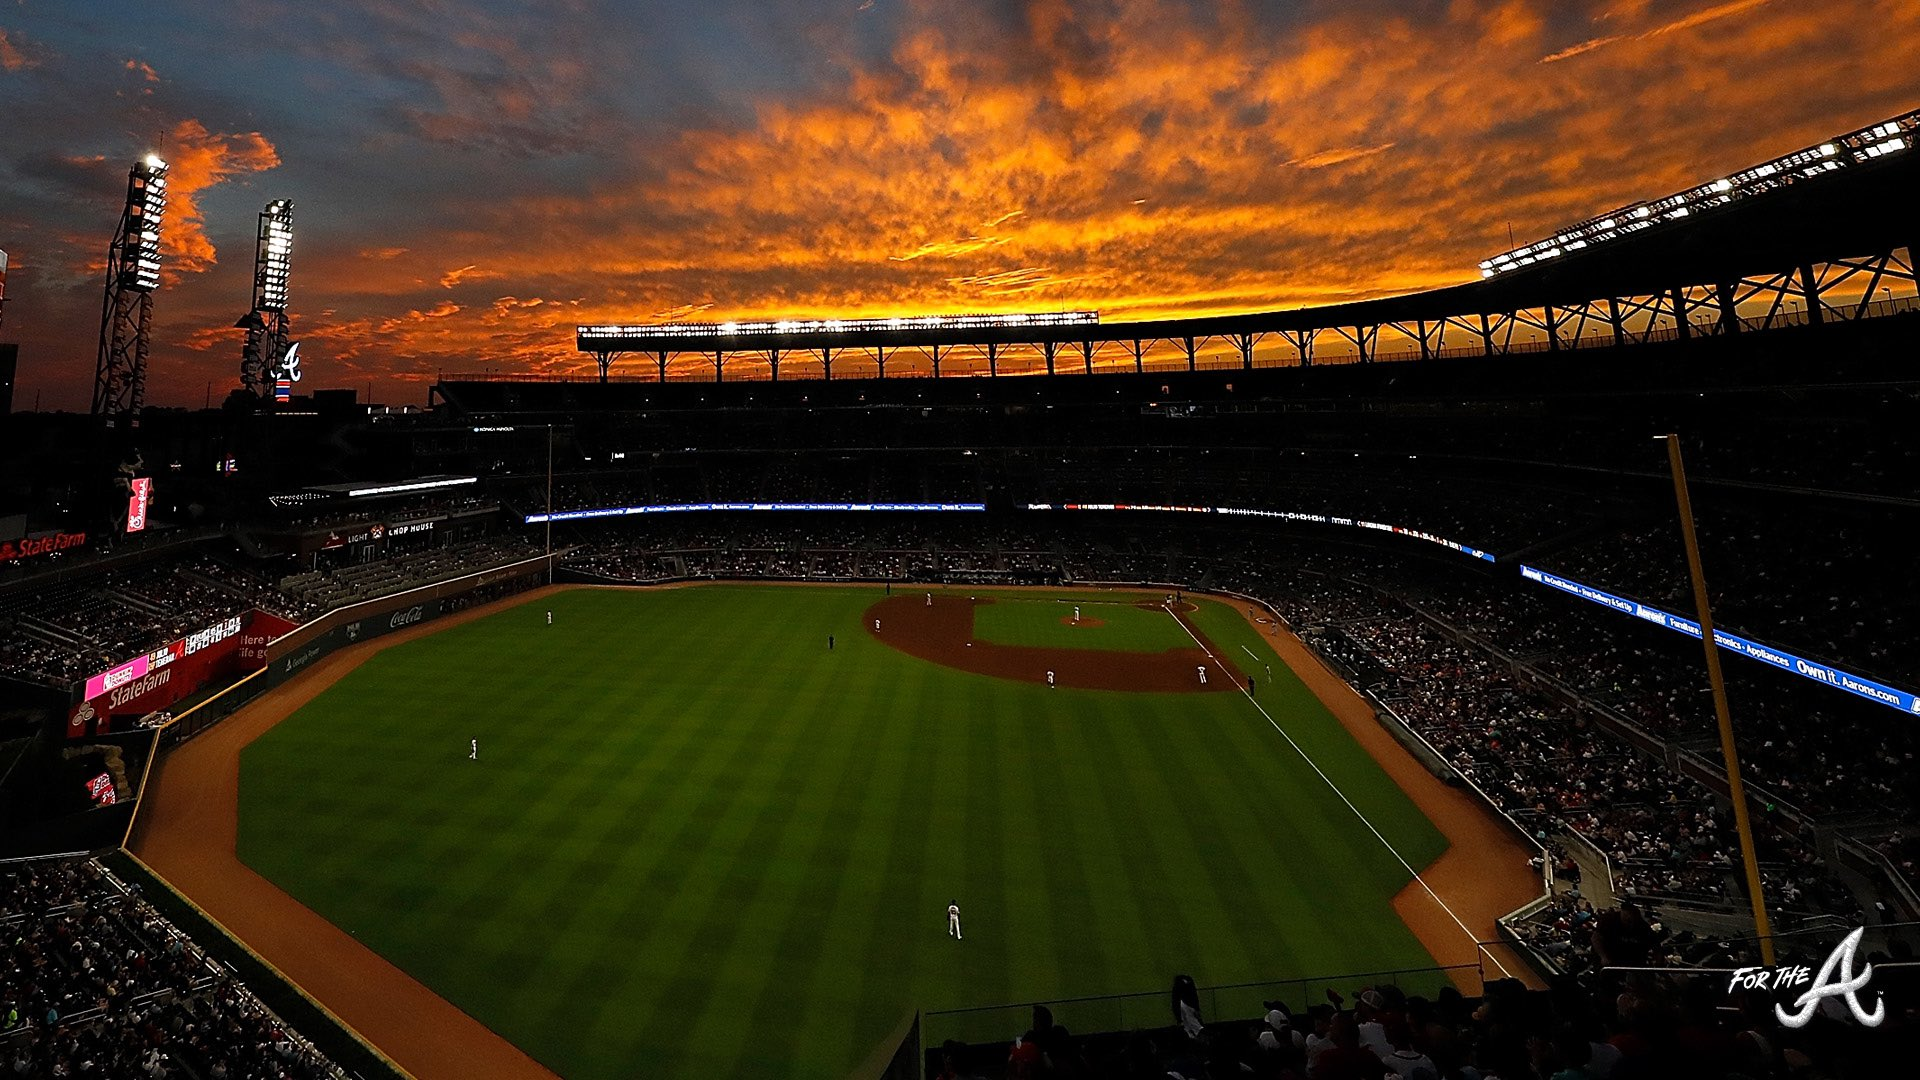 Atlanta Braves On Twitter Why Work From Home When You Can Work From The Ballpark Use These Braves Backgrounds On Your Next Video Conference Call Https T Co F99npgall2